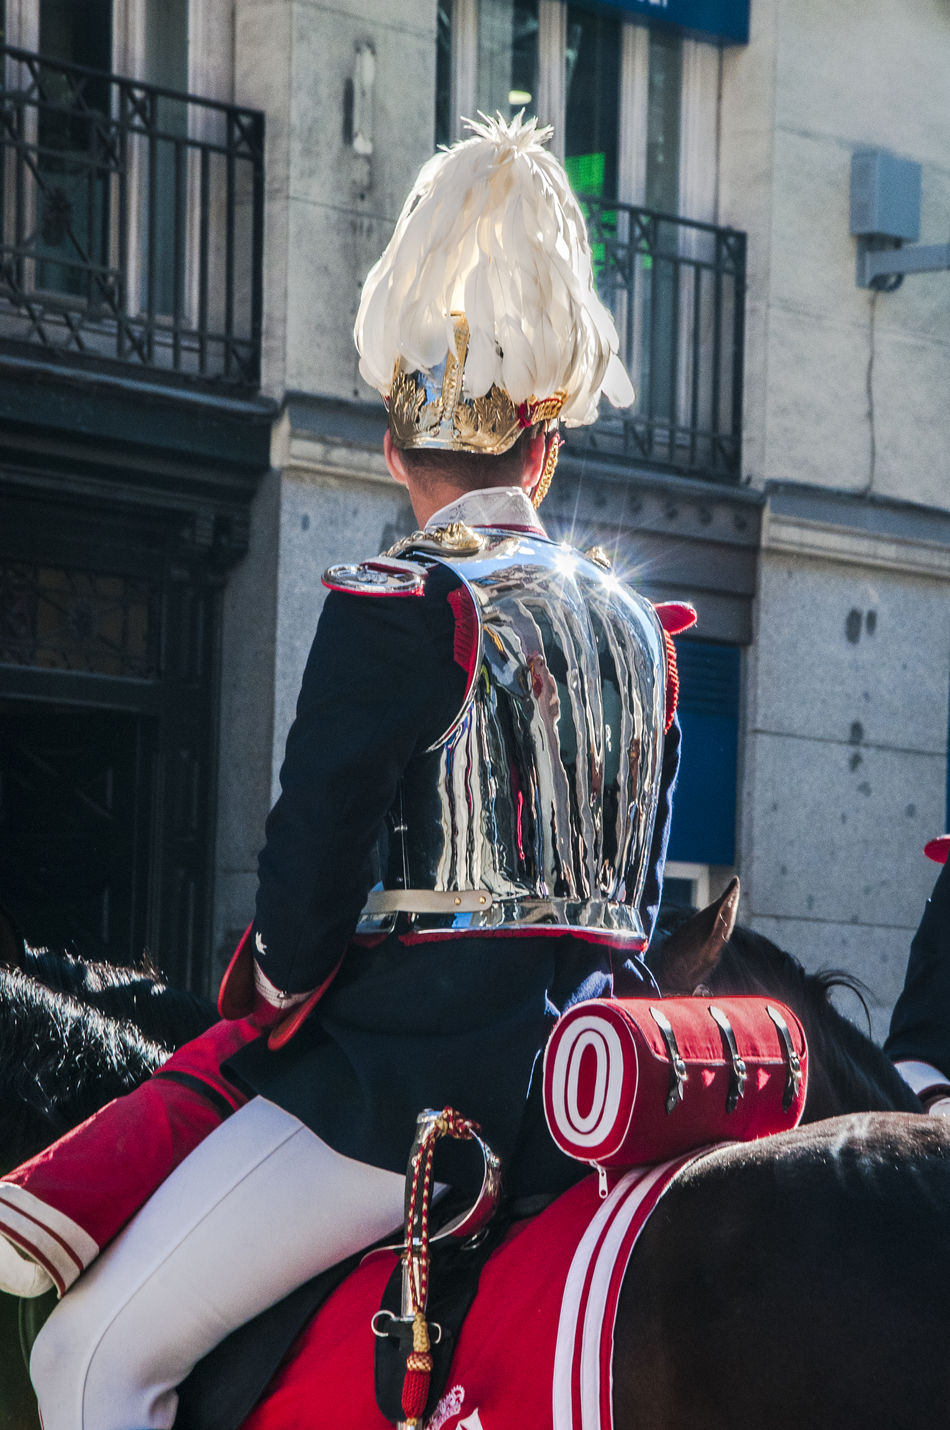 Back view view of a mounted cavalery soldier in full ceremonial uniform. Adult Back Cavalry City Close-up Editorial  Guard Horse Horses Military Mounted News One Person Only Men People Sitting Street Travel Uniform Uniforme Uniforms